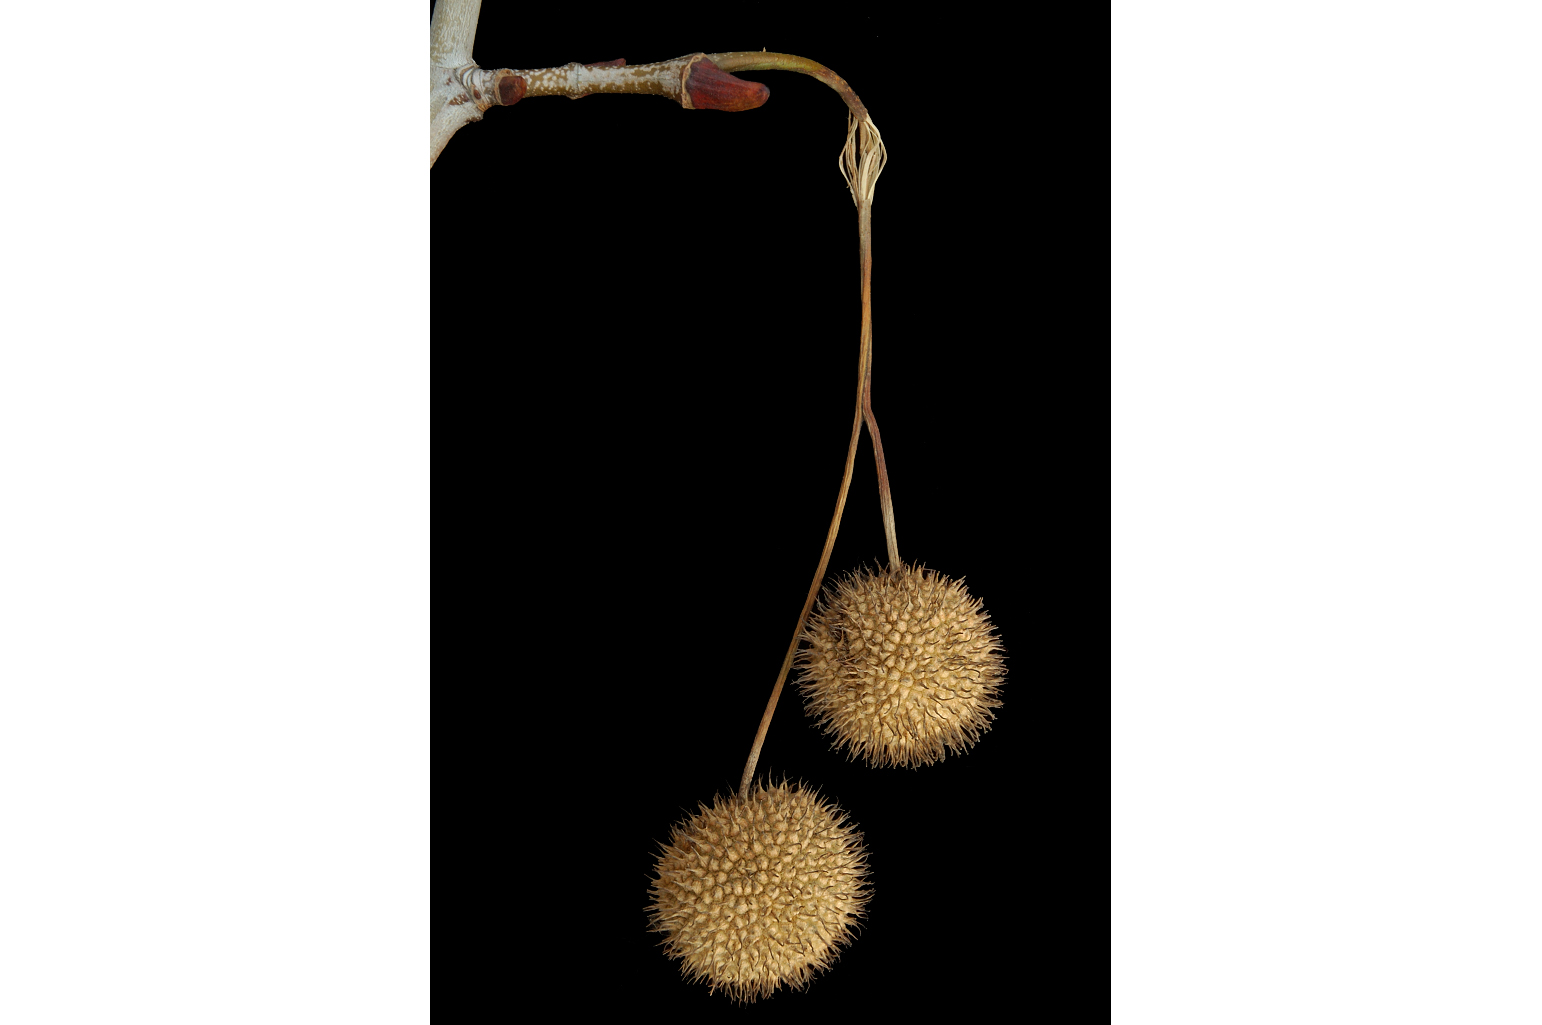 Two hanging globose infructescences of club-shaped achenes